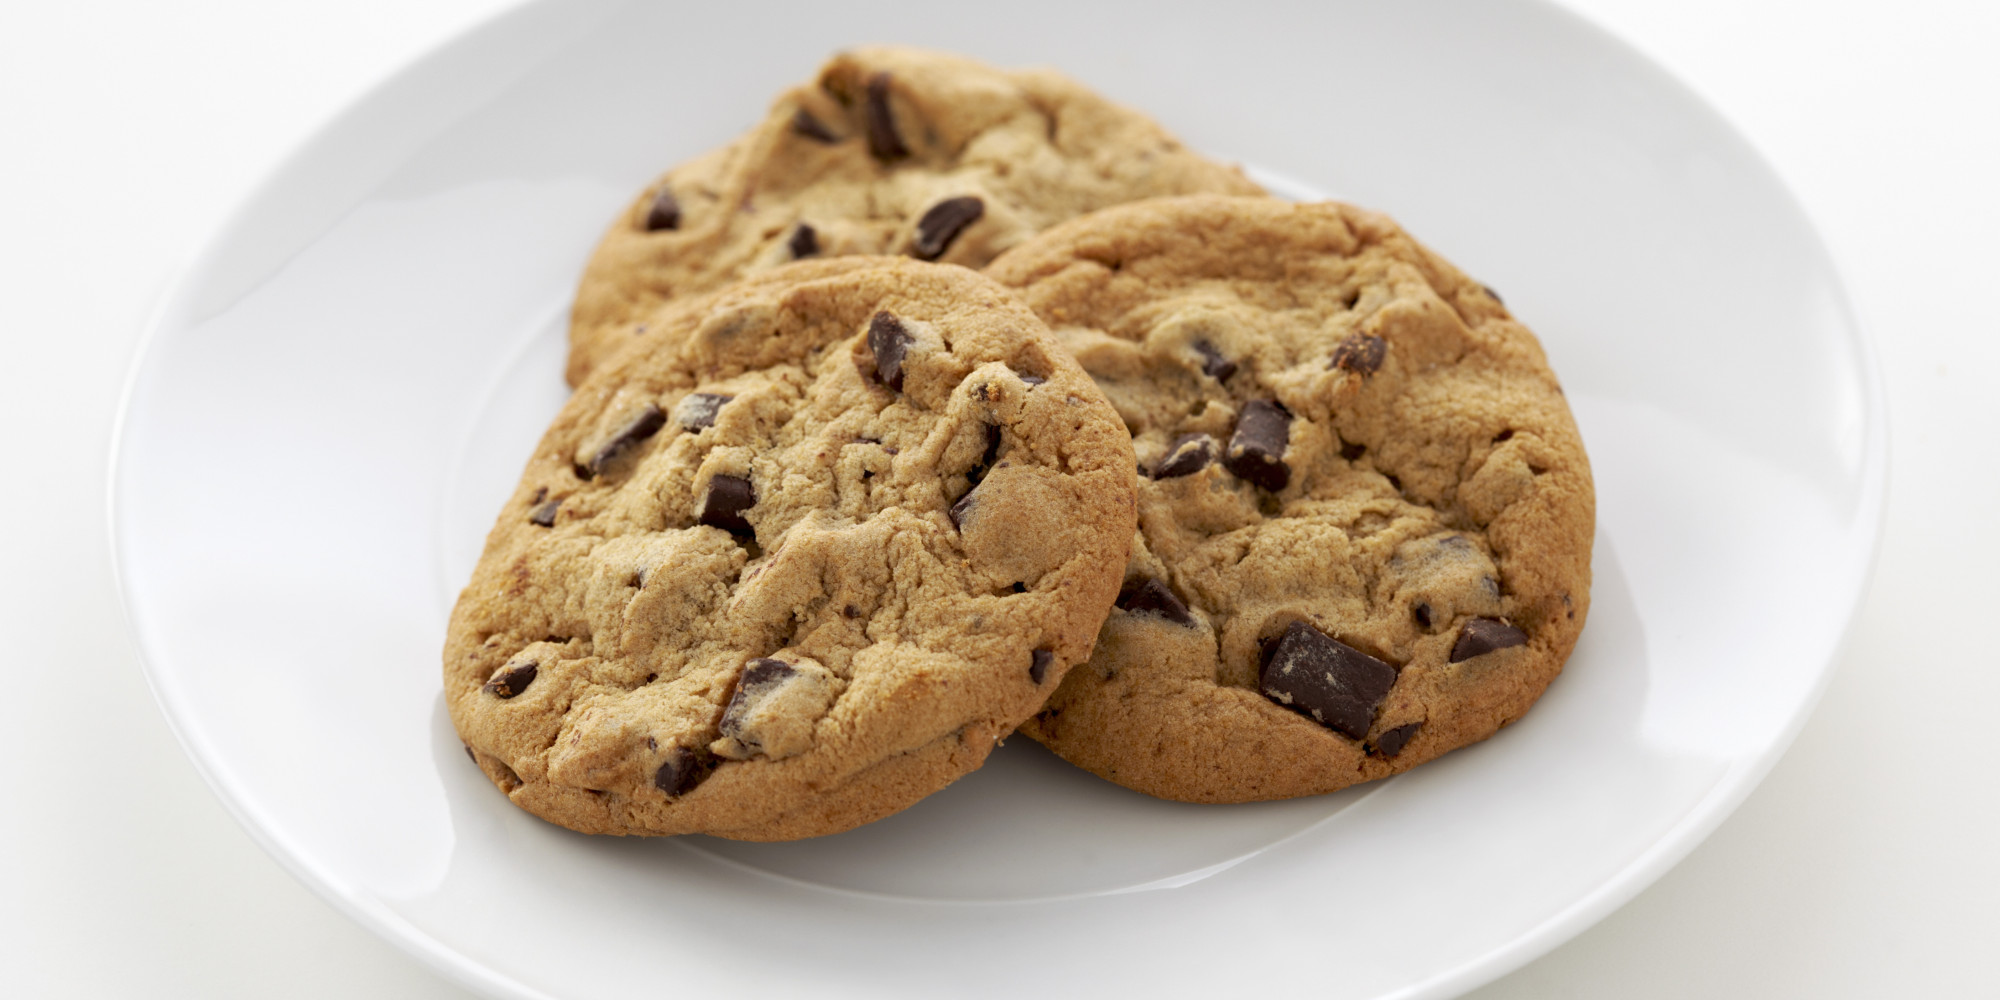 History Of The Chocolate Chip Cookie